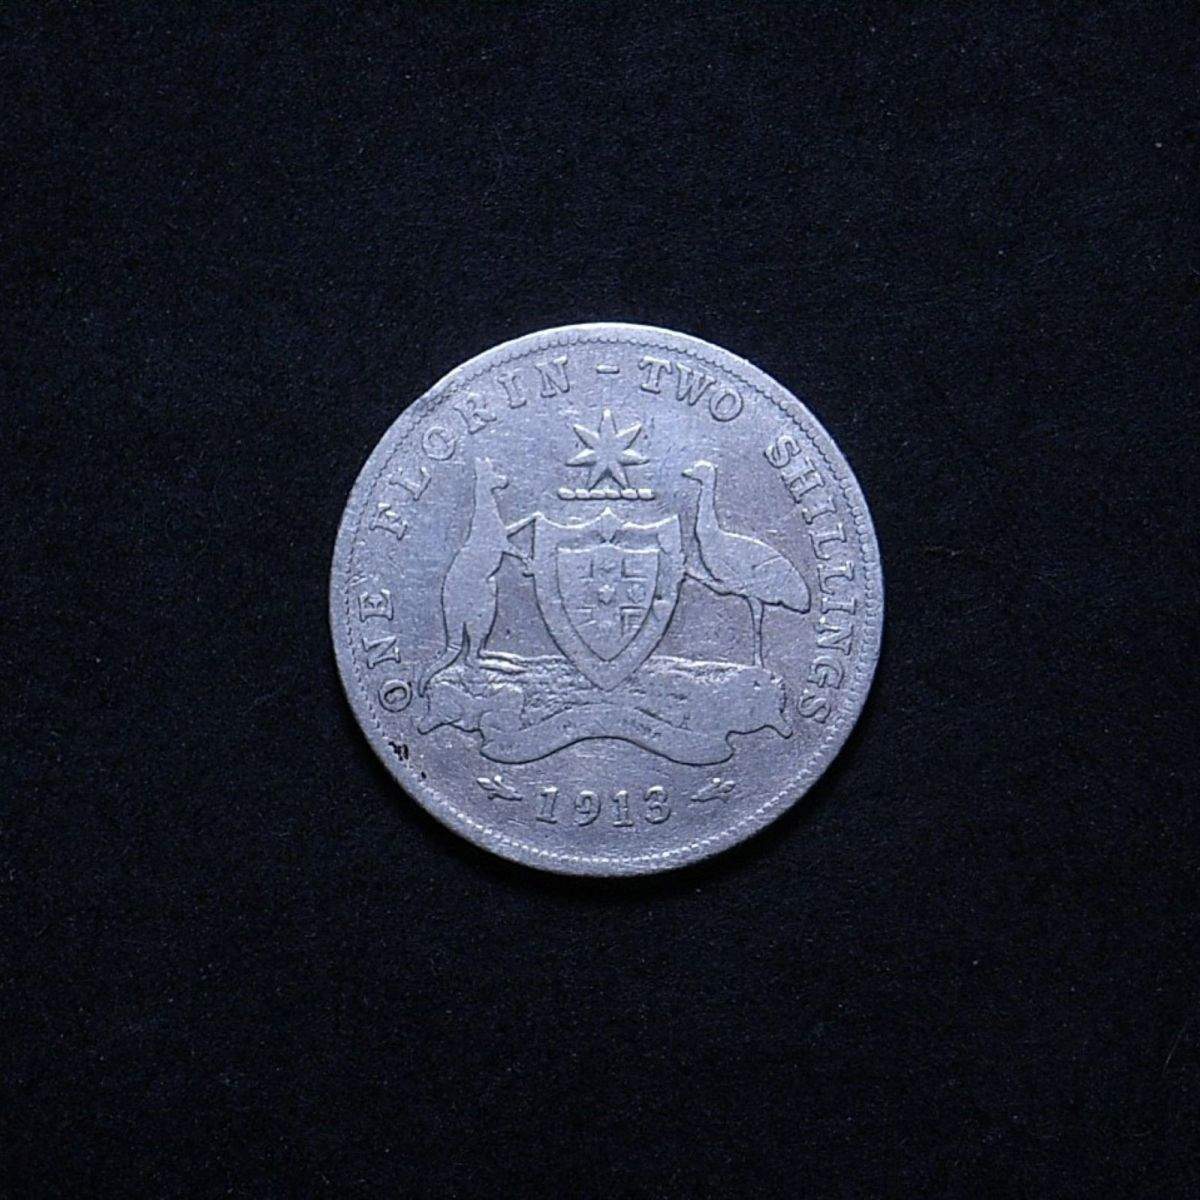 Aus Florin 1913 reverse showing overall appearance